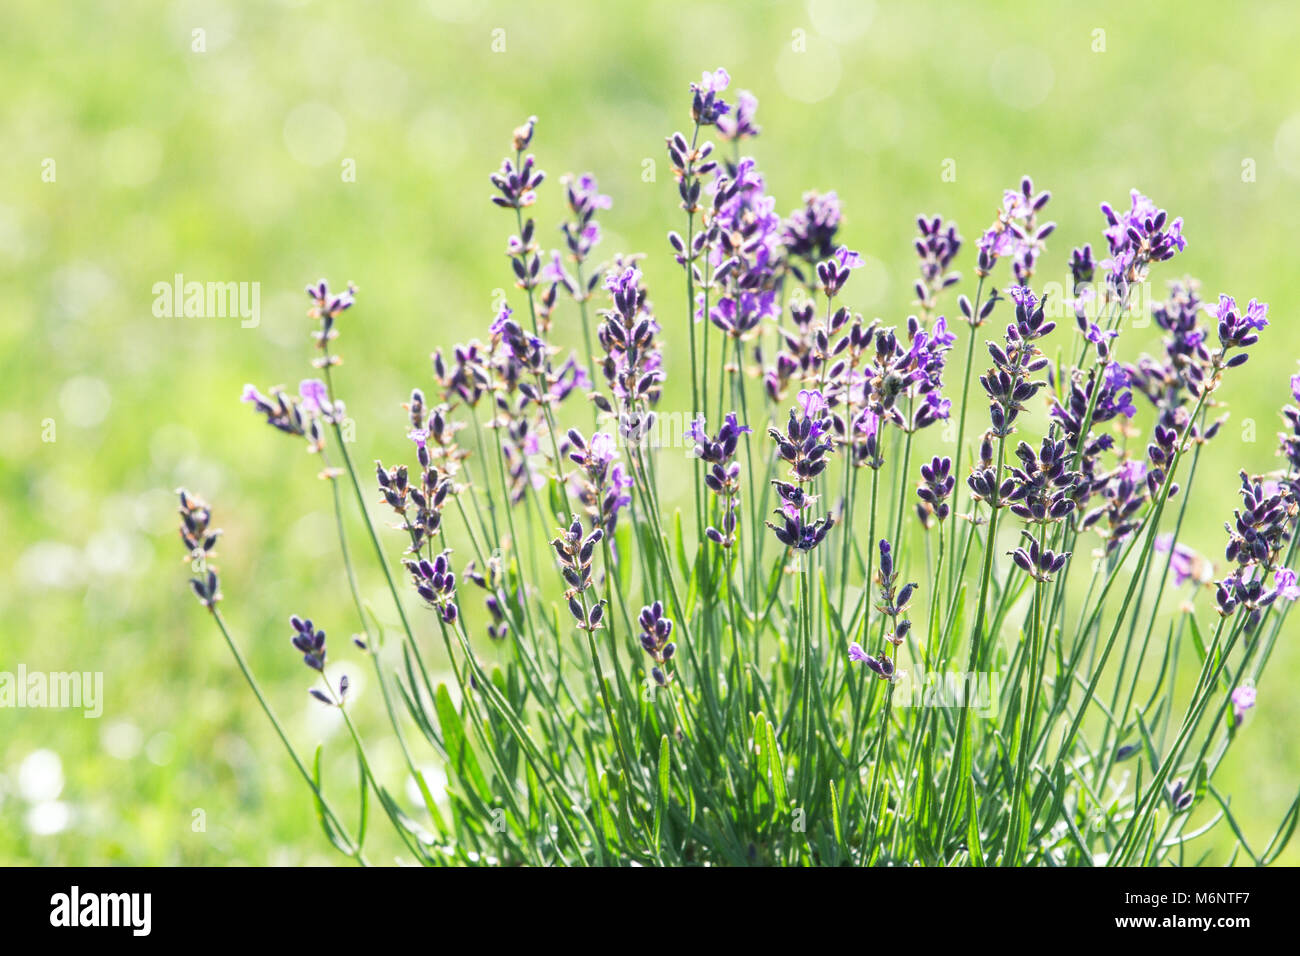 Lavender blooming on the field Stock Photo